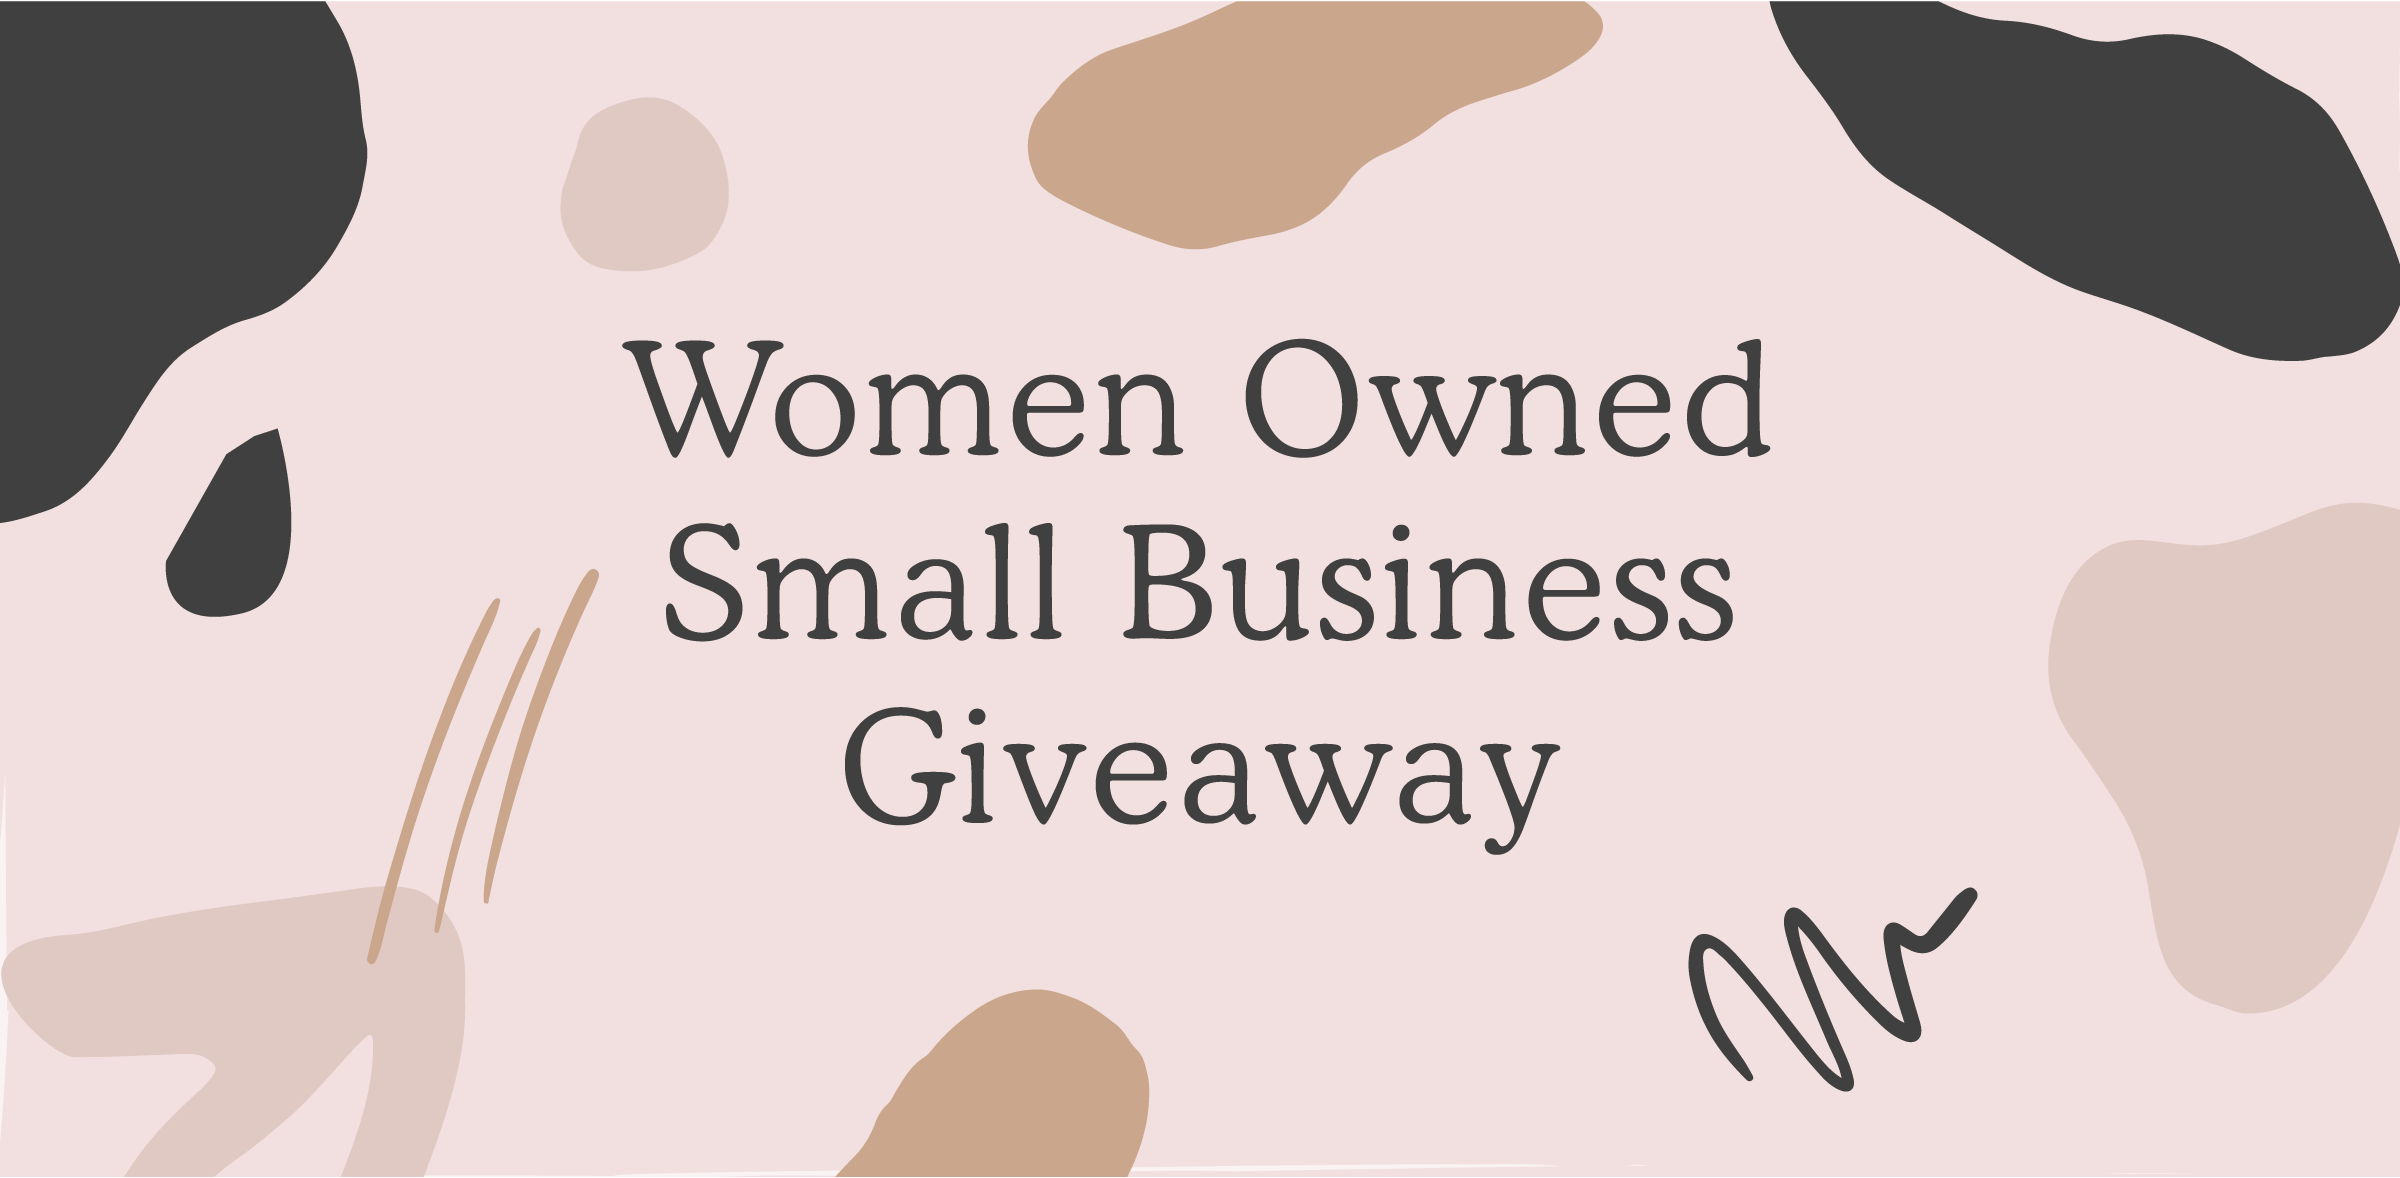 Women Owned Small Business Giveaway